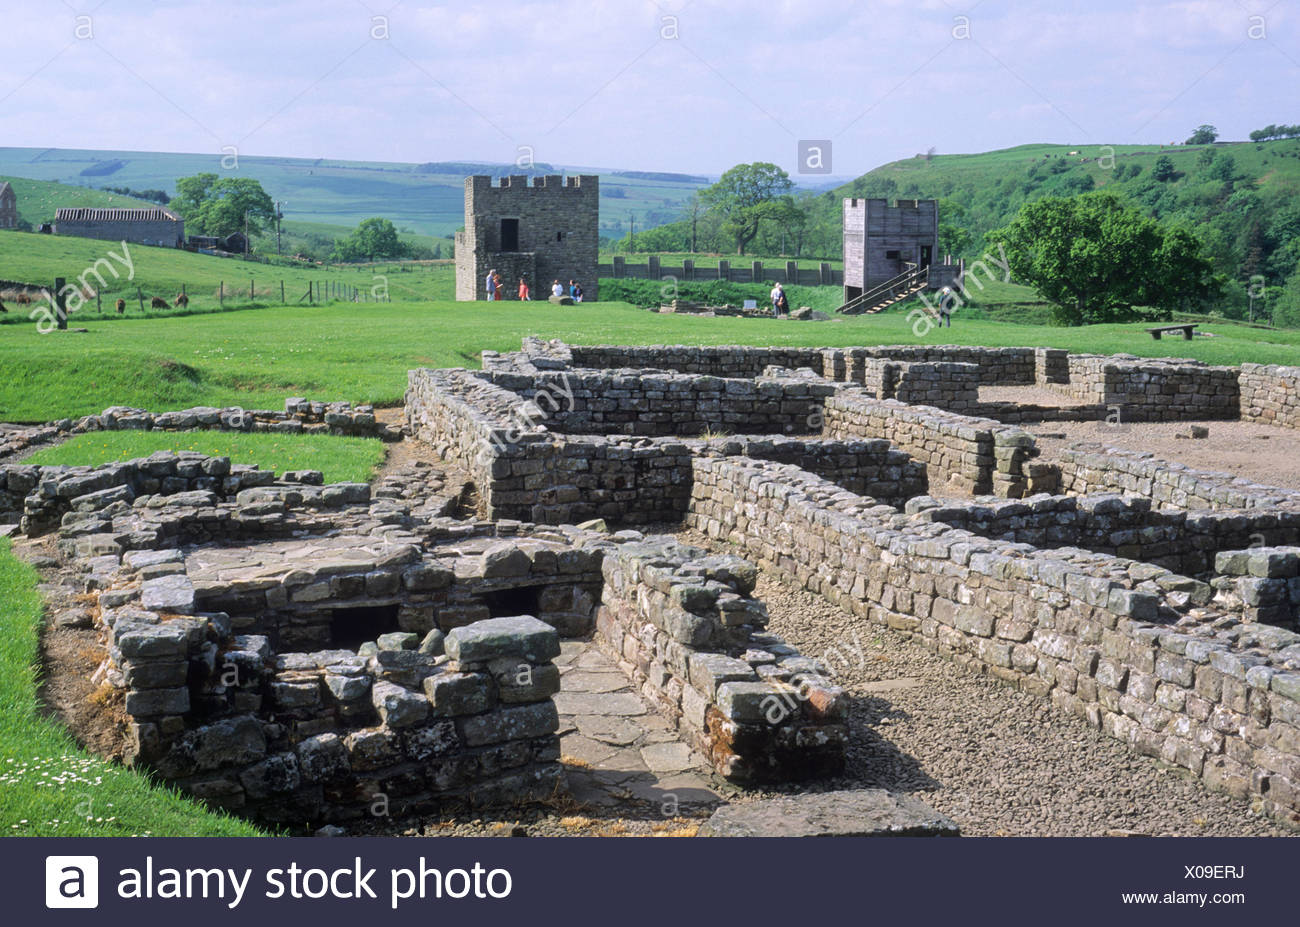 Vindolanda Roman archaeological Site Northumberland Hadrians Wall English archaeology ruins walls camp England UK history ruin - Stock Image